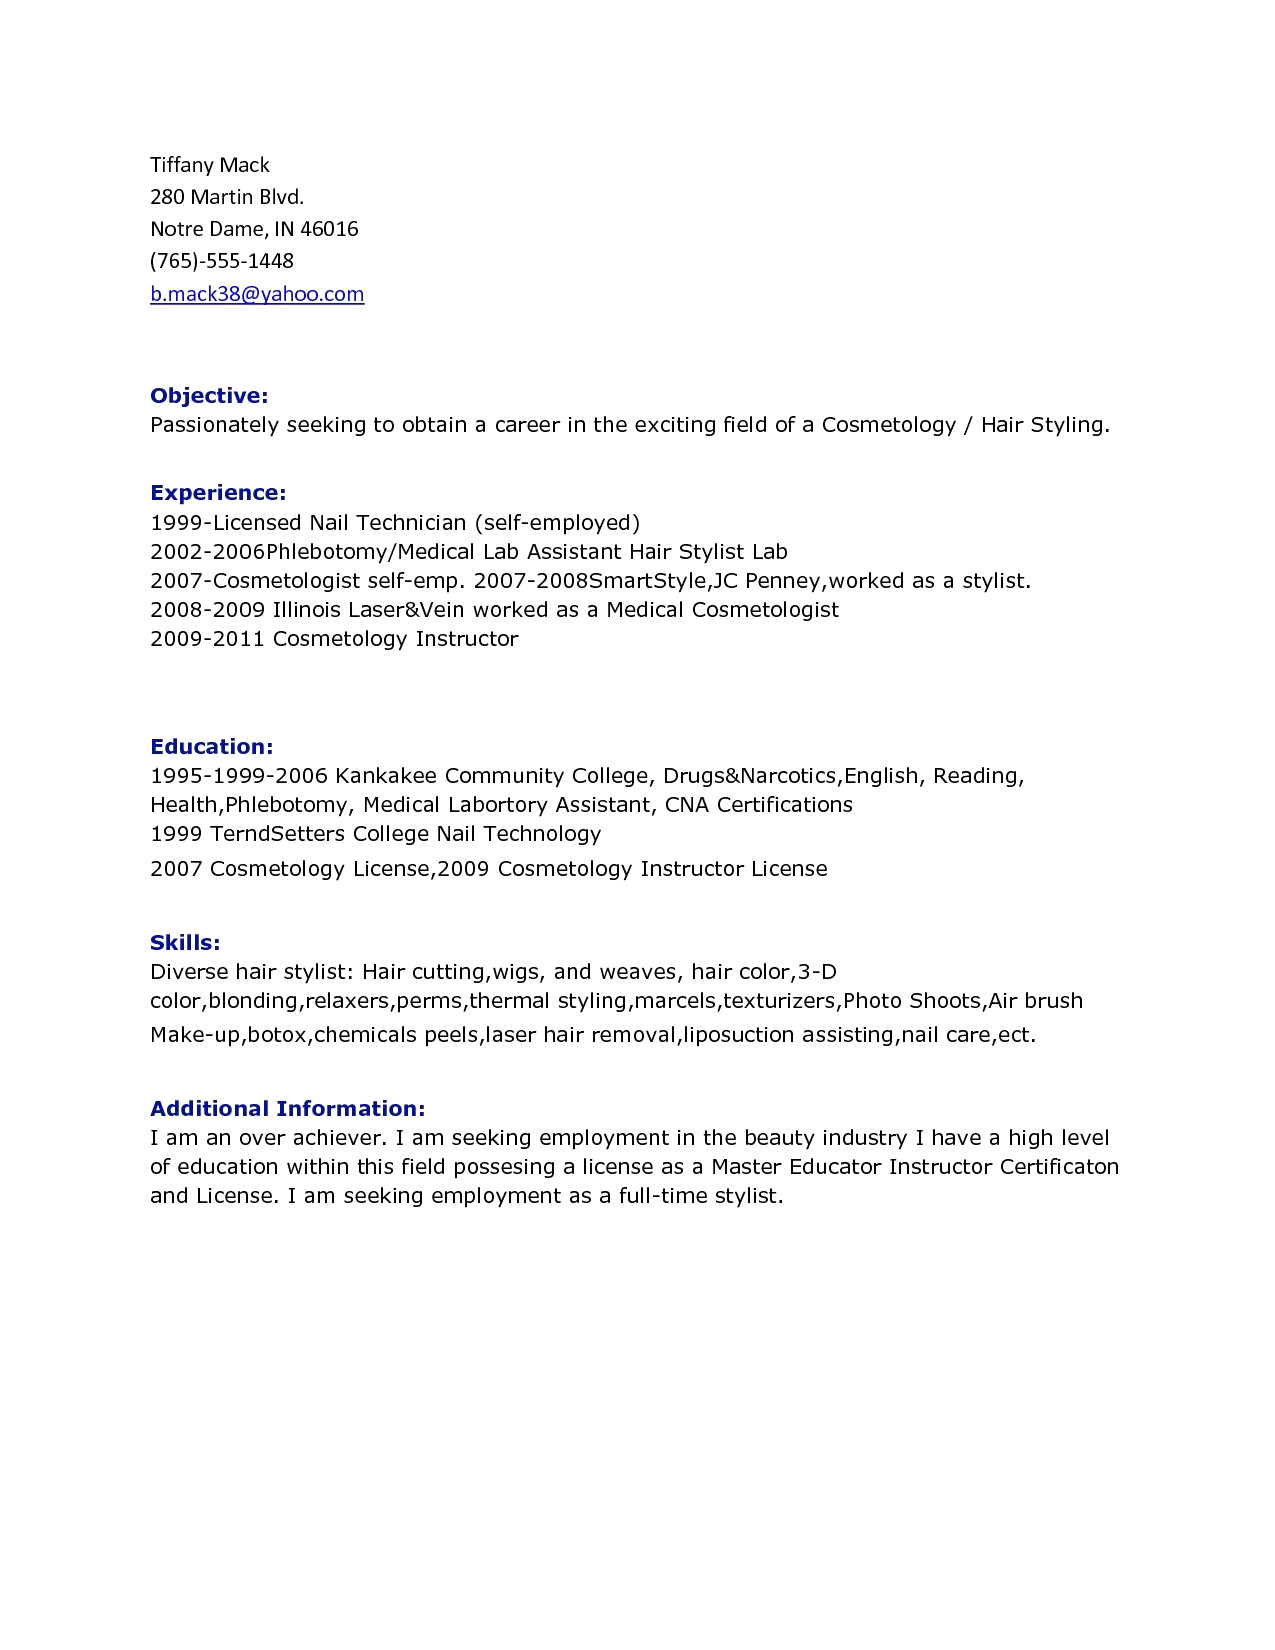 Resume for A Cosmetologist - 49 Inspirational Information Technology Resume